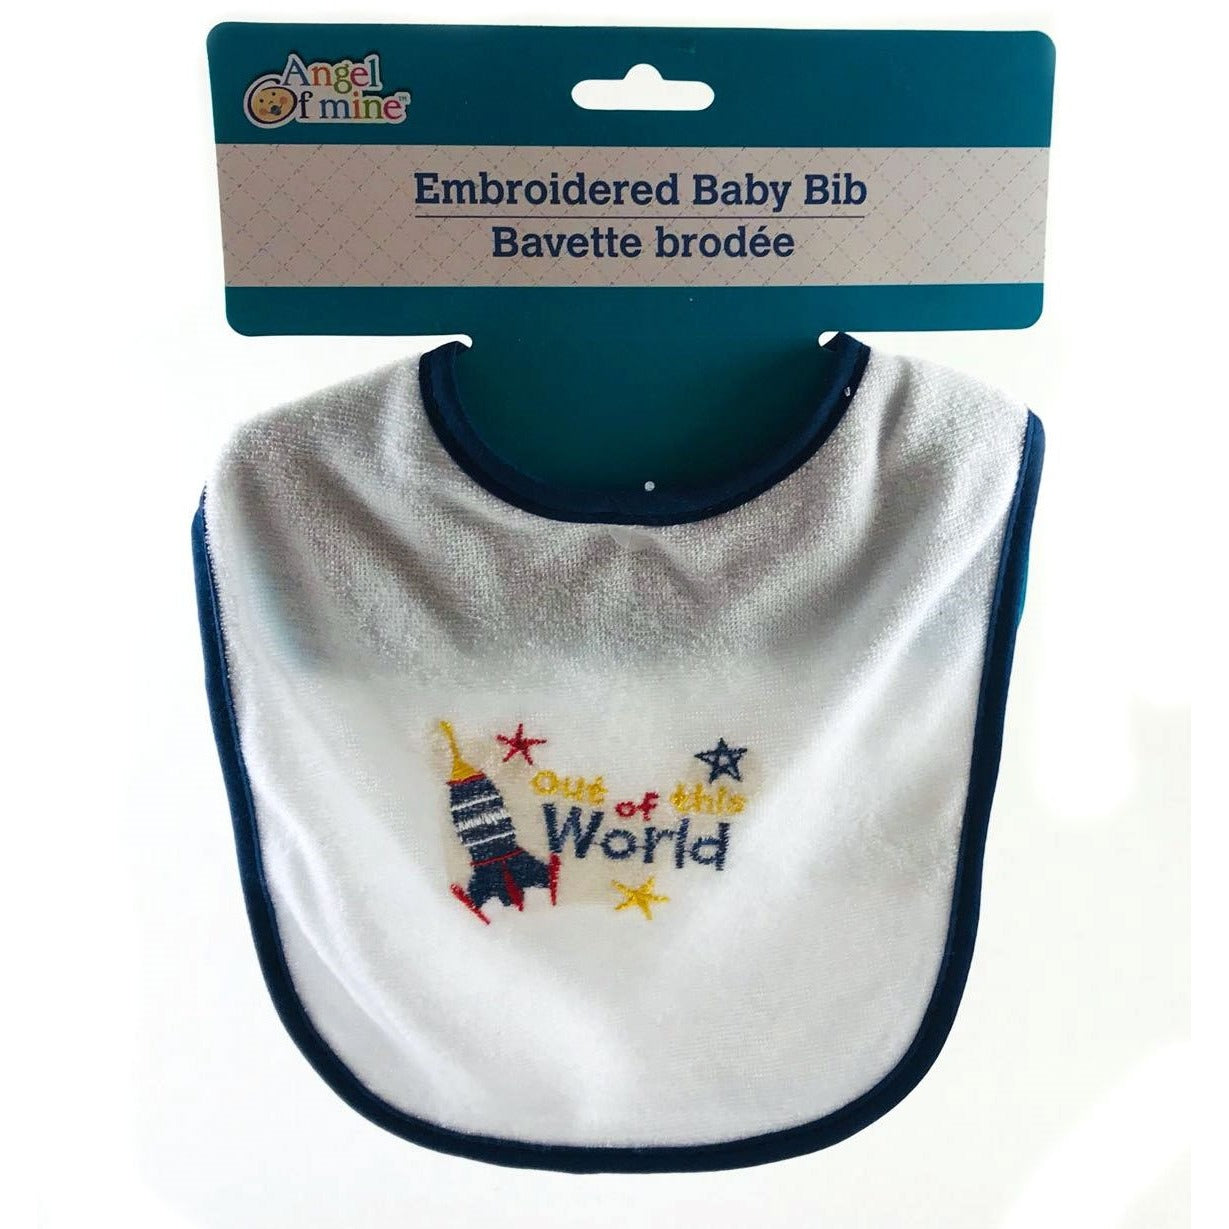 Angel of Mine Embroidered Baby Bib - Out of This World